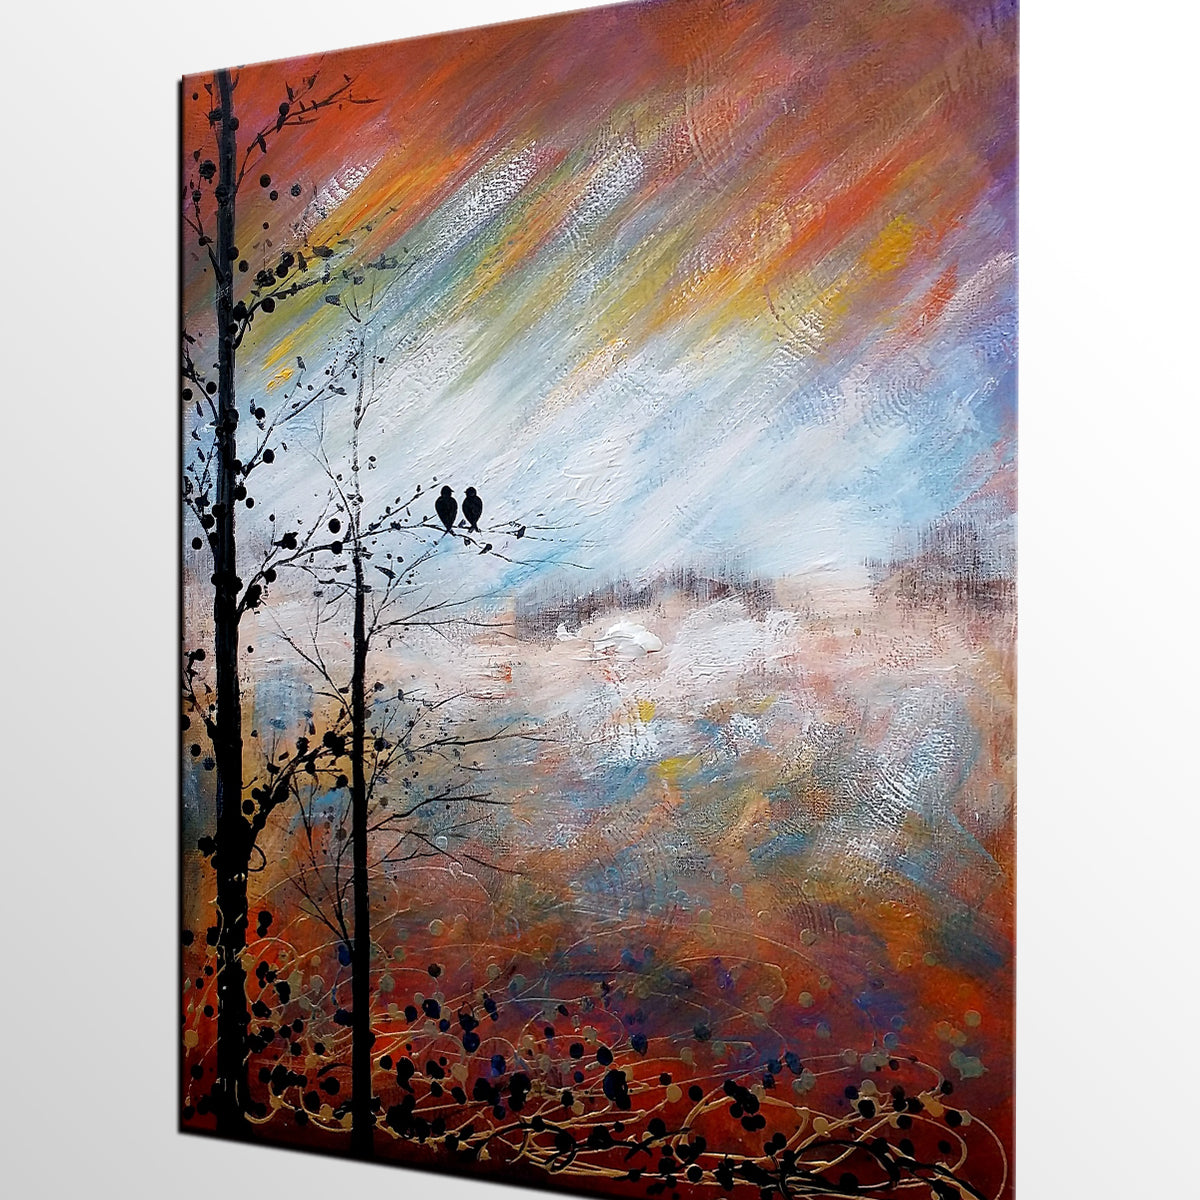 Love Birds Painting, Abstract Art, Landscape Painting, Abstract Painting, Large Art, Canvas Art, Wall Art, Canvas Painting, Bedroom Wall Decor